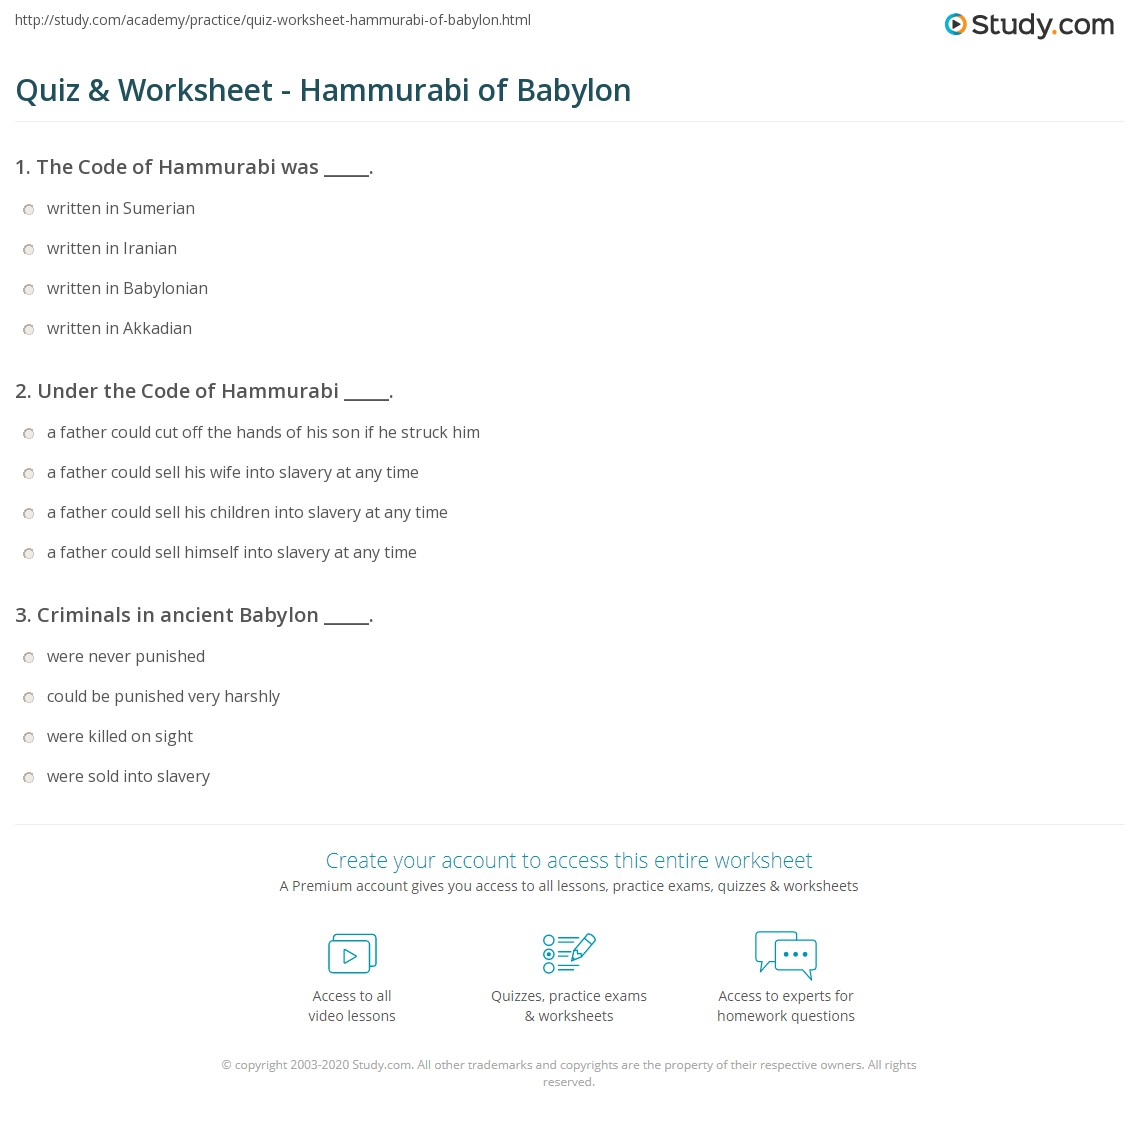 code of hammurabi worksheet rringband quiz worksheet hammurabi of babylon study com